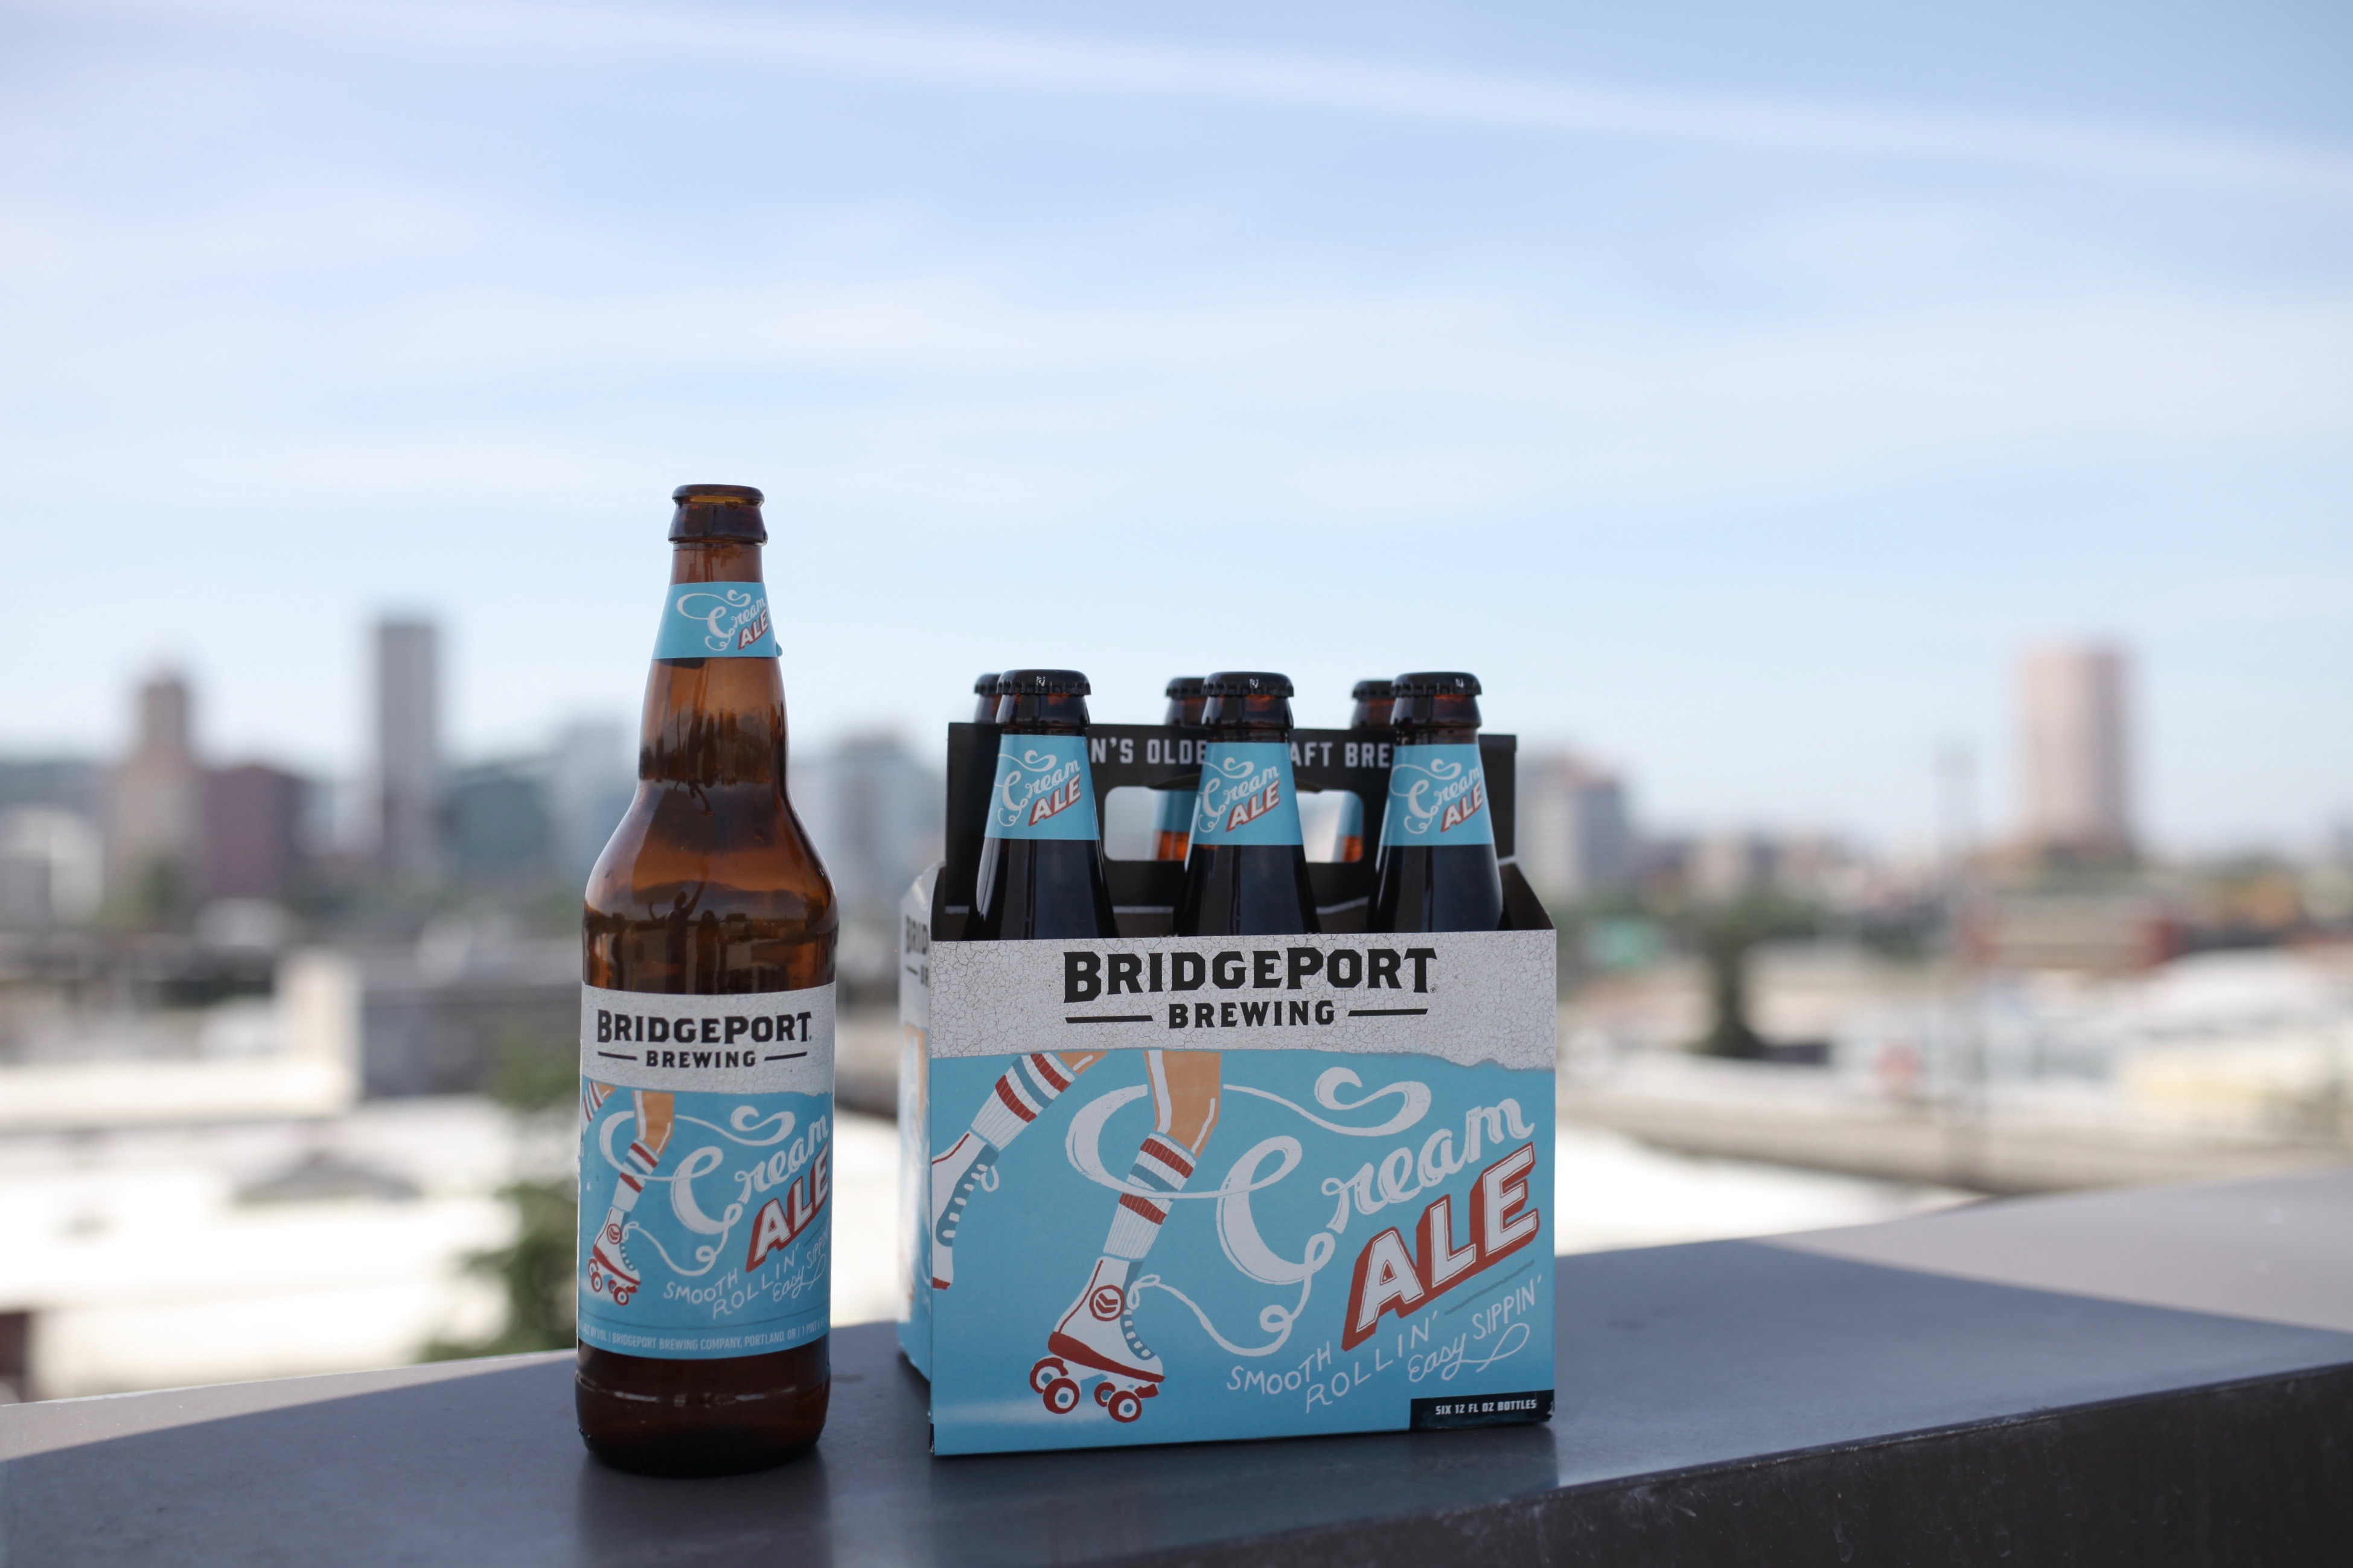 BridgePort Cream Ale 6 Pack and 22 oz. Bottle. (image courtesy of BridgePort Brewing)